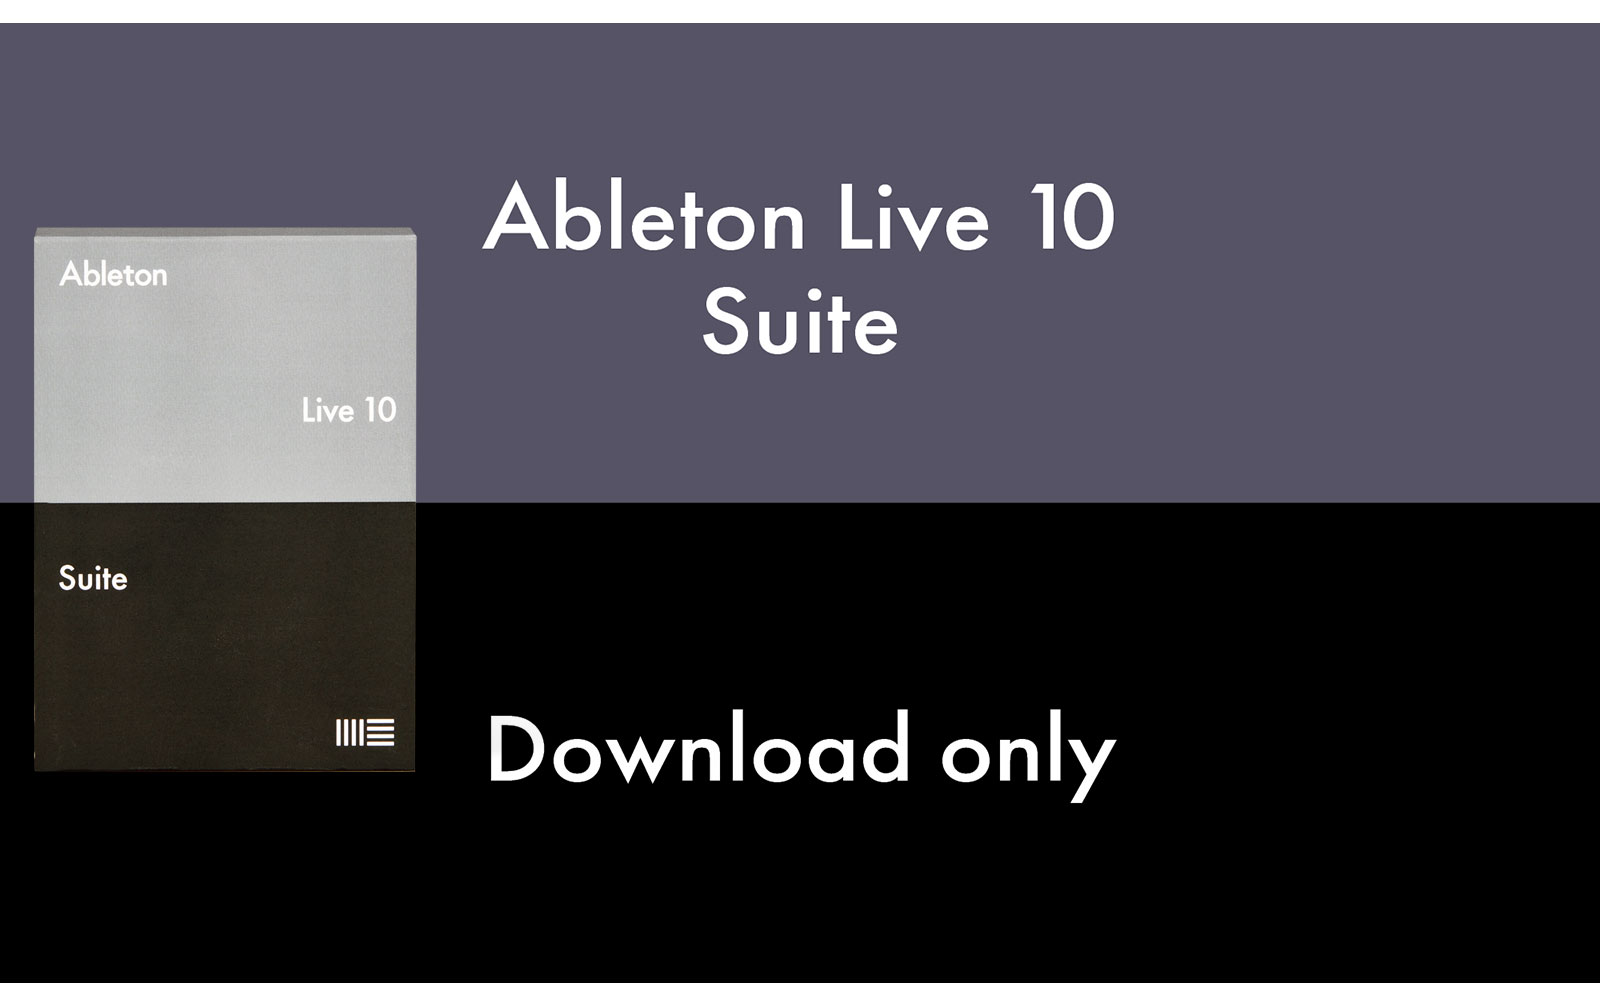 ableton-live-10-suite-upg-from-live-7-9-suite-download